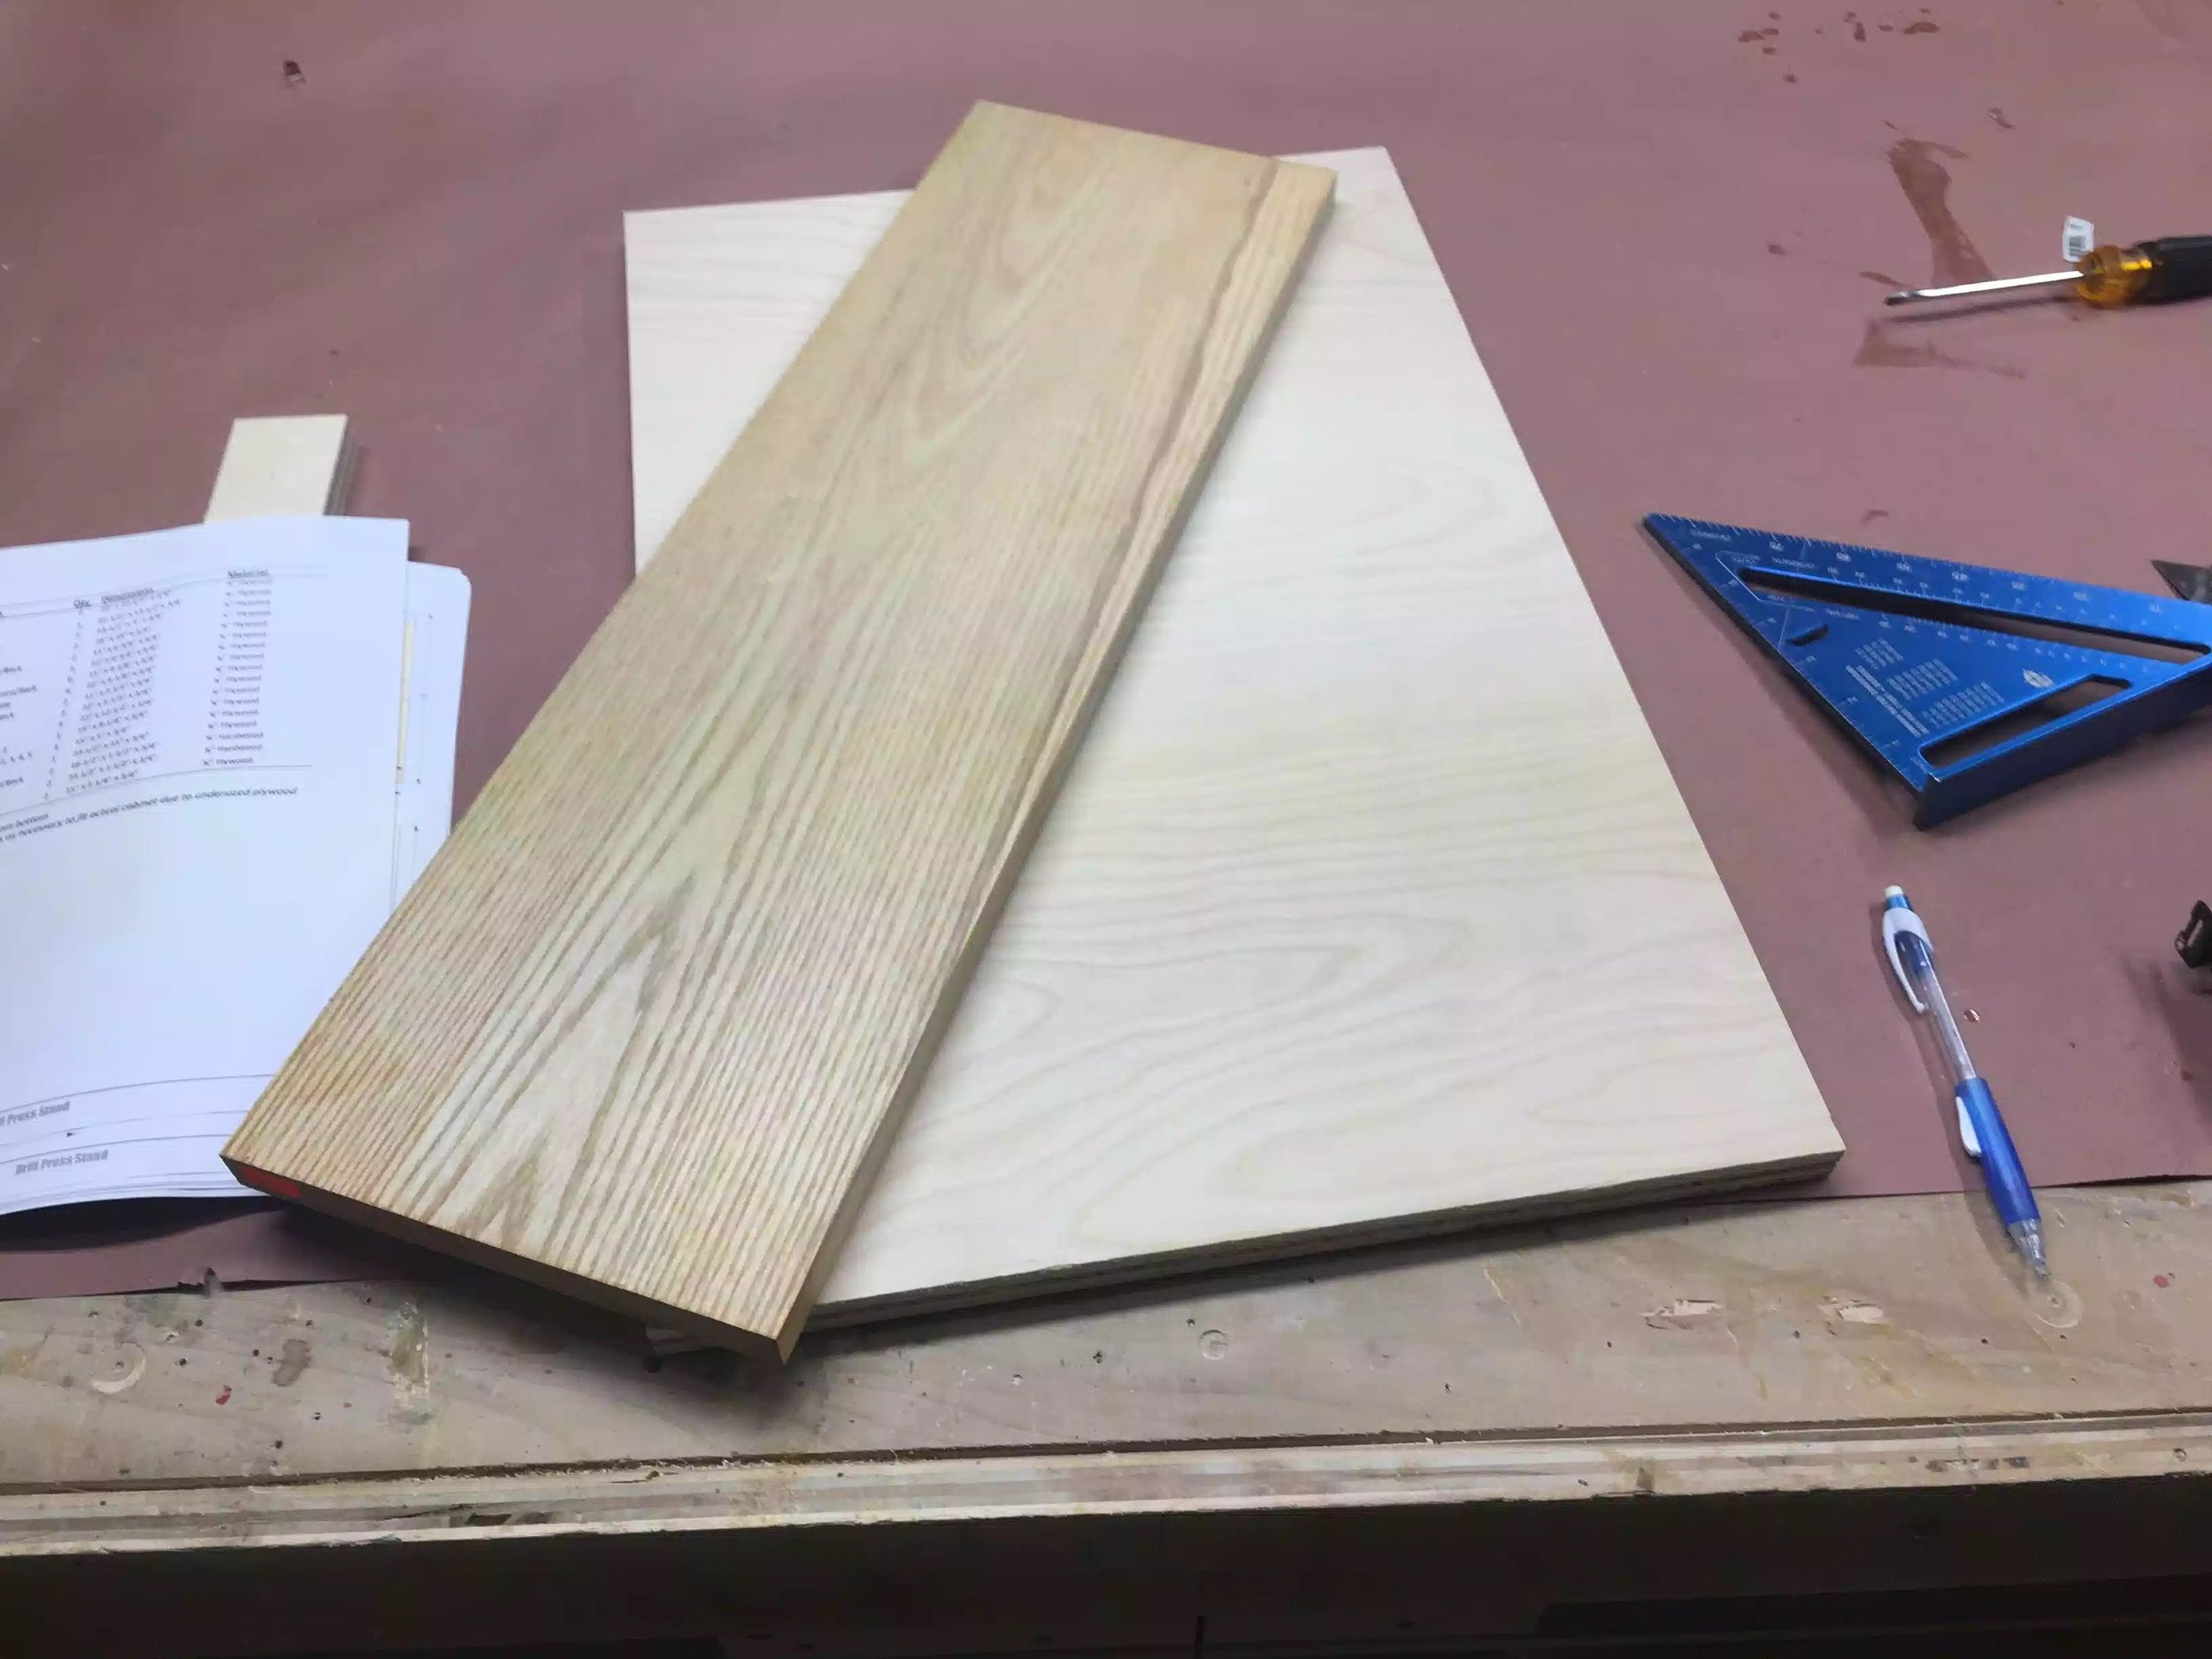 Here you can see the solid ash I picked up from a local lumber yard and the plywood top.